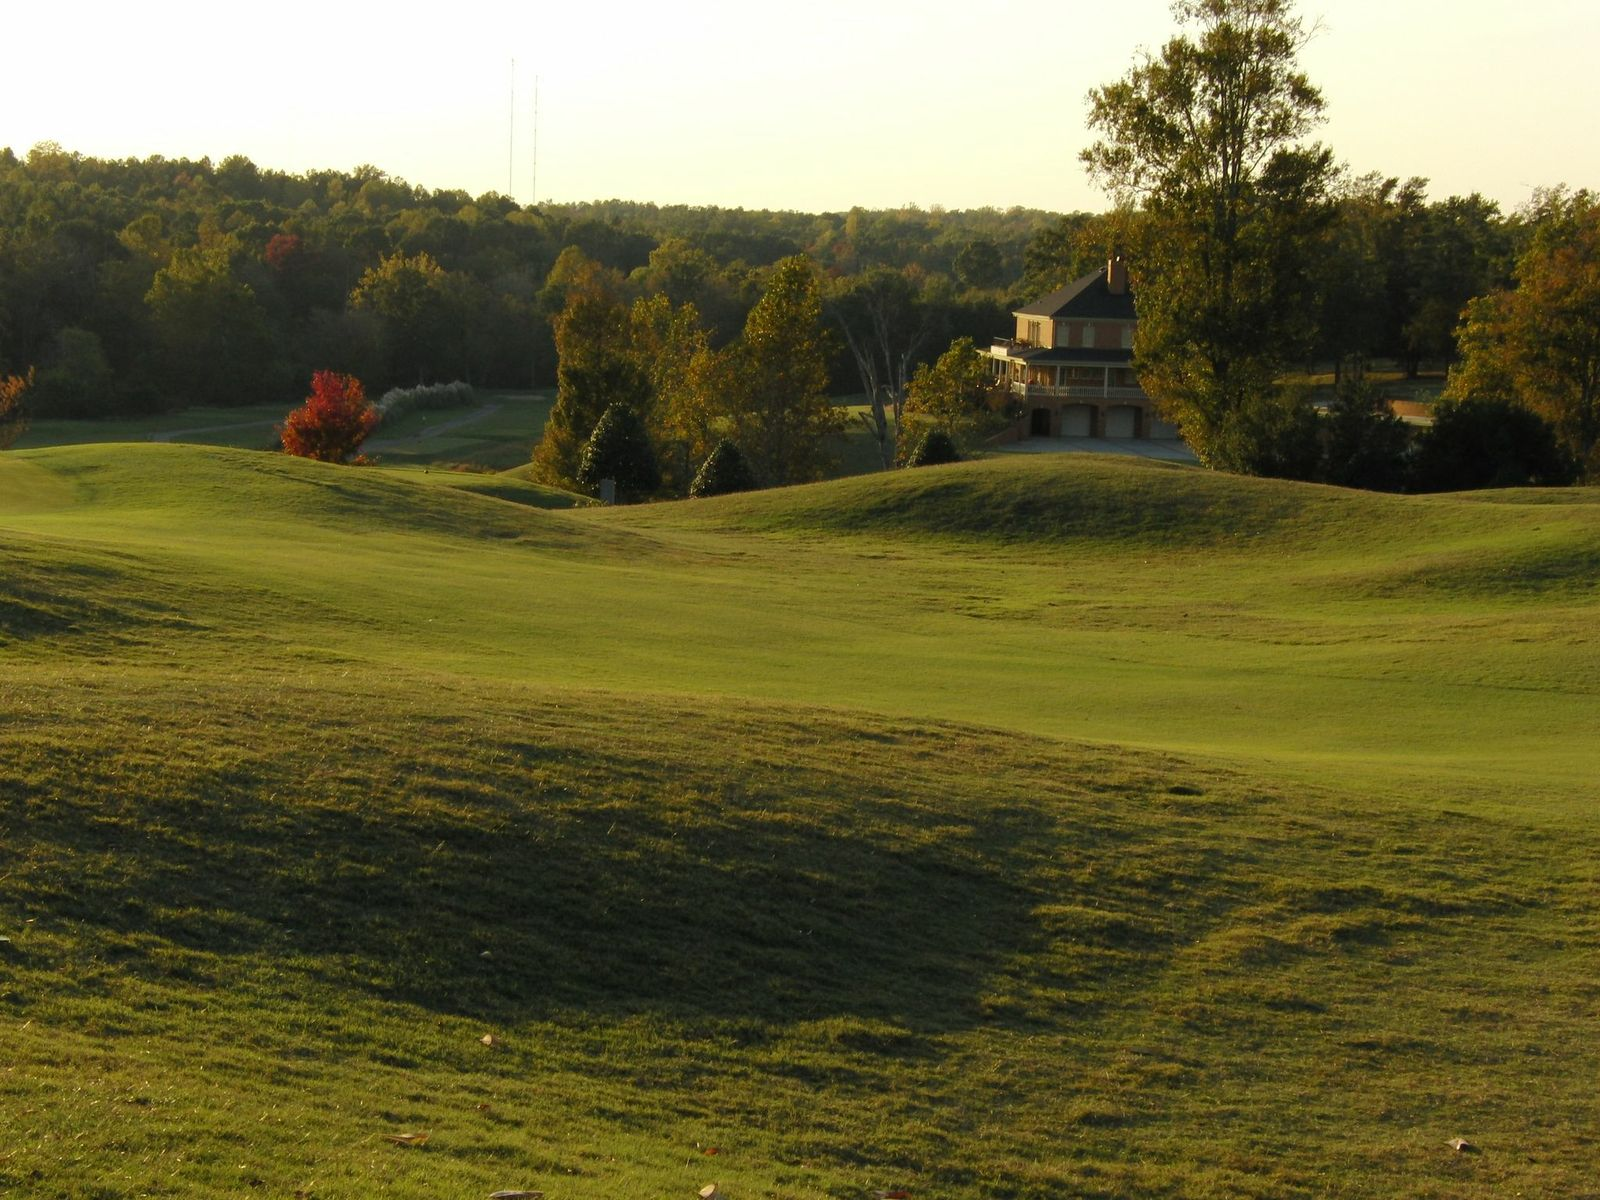 a rolling golf course with a view of the clubhouse